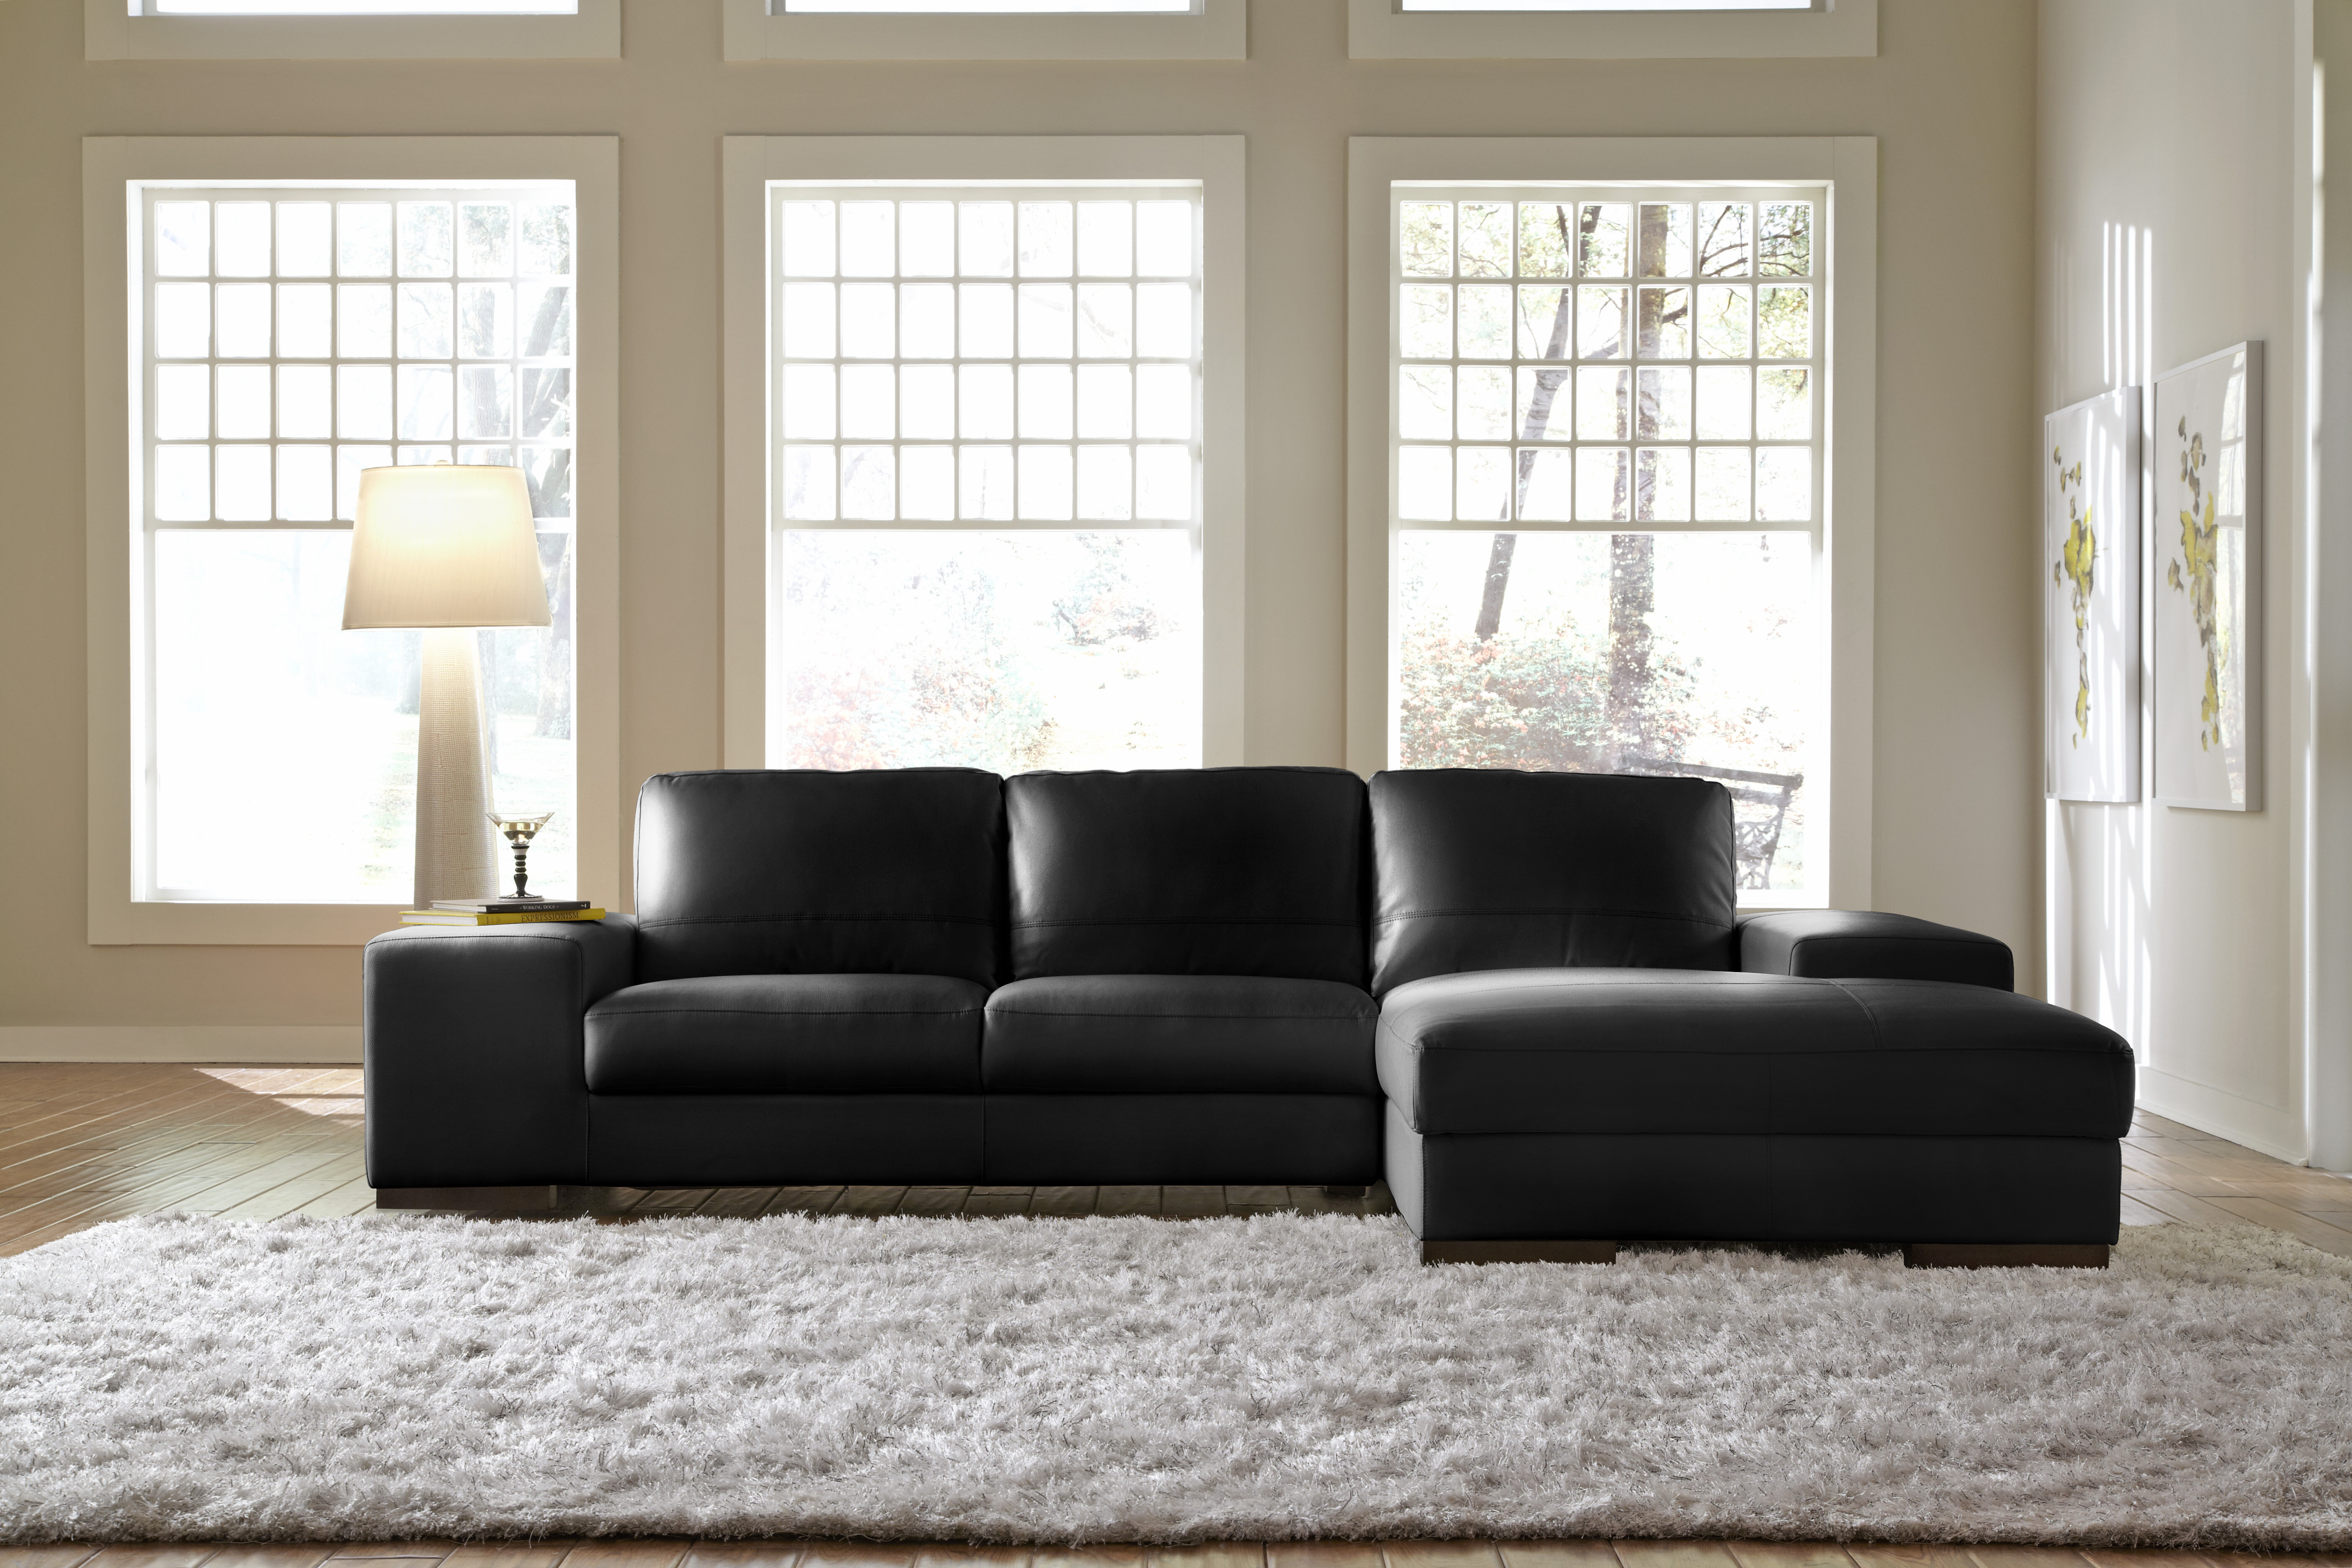 leather sectional match ashley by piece products design item signature francesco number